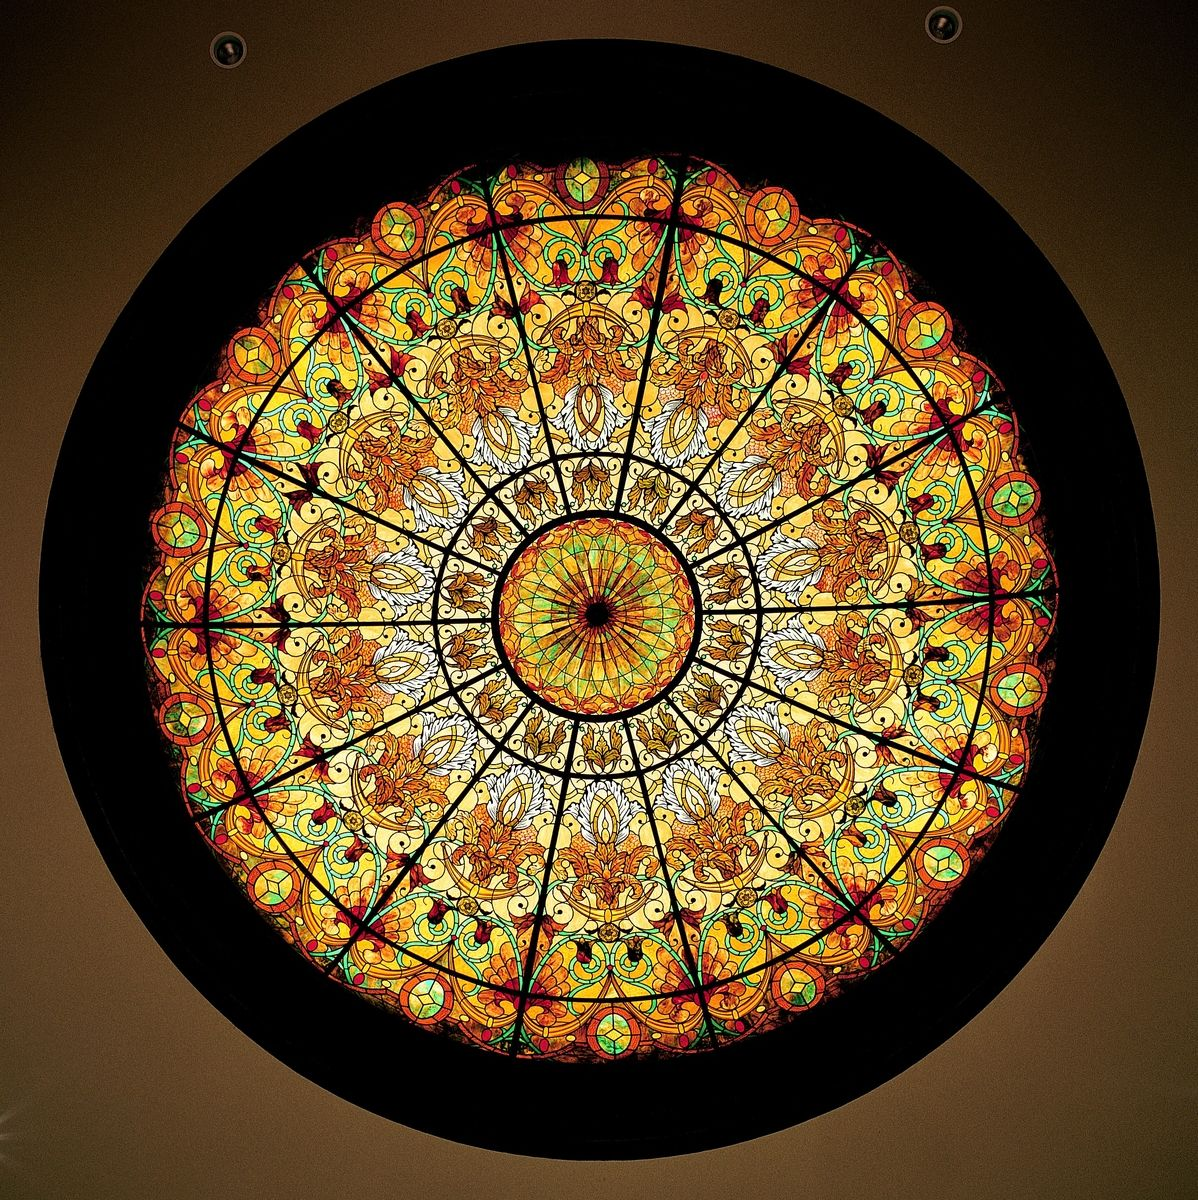 Hand Made Stained Glass Dome Ceiling 16 39 X 4 39 In Hand